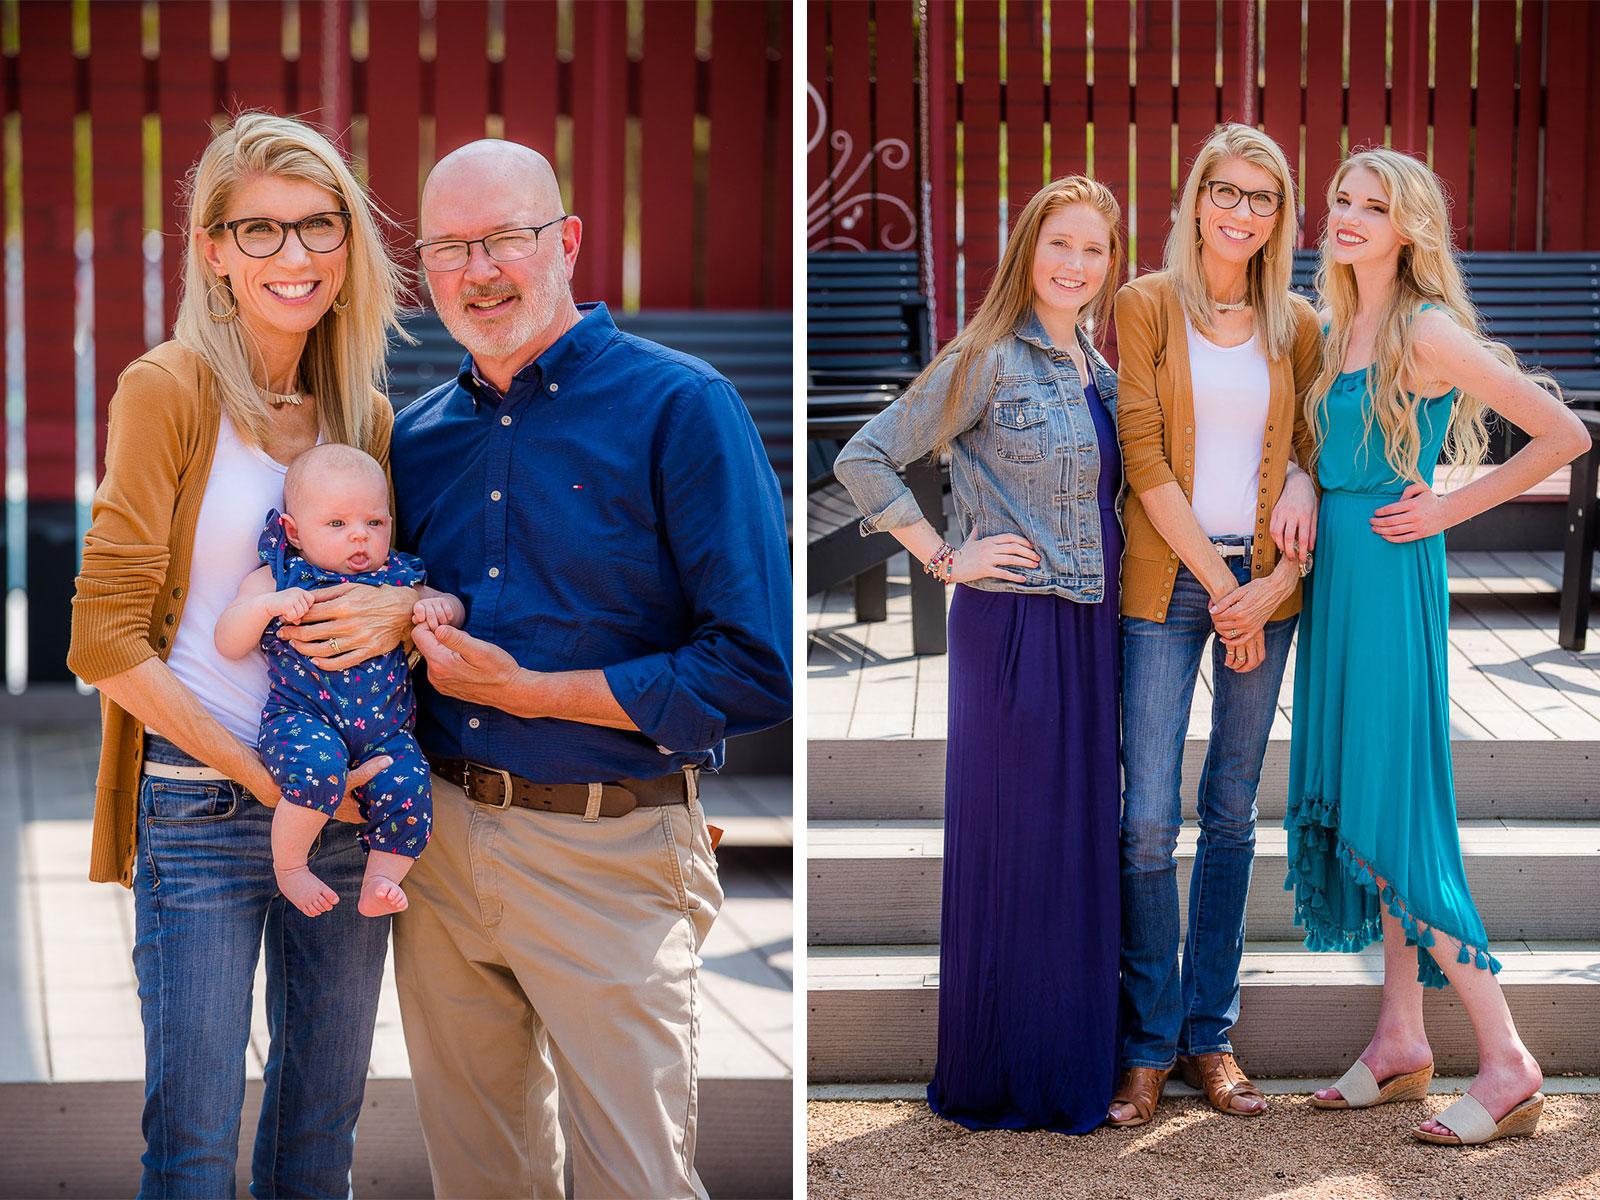 Eric_and_Christy_Photography_Blog_Cannon_Family-5-6